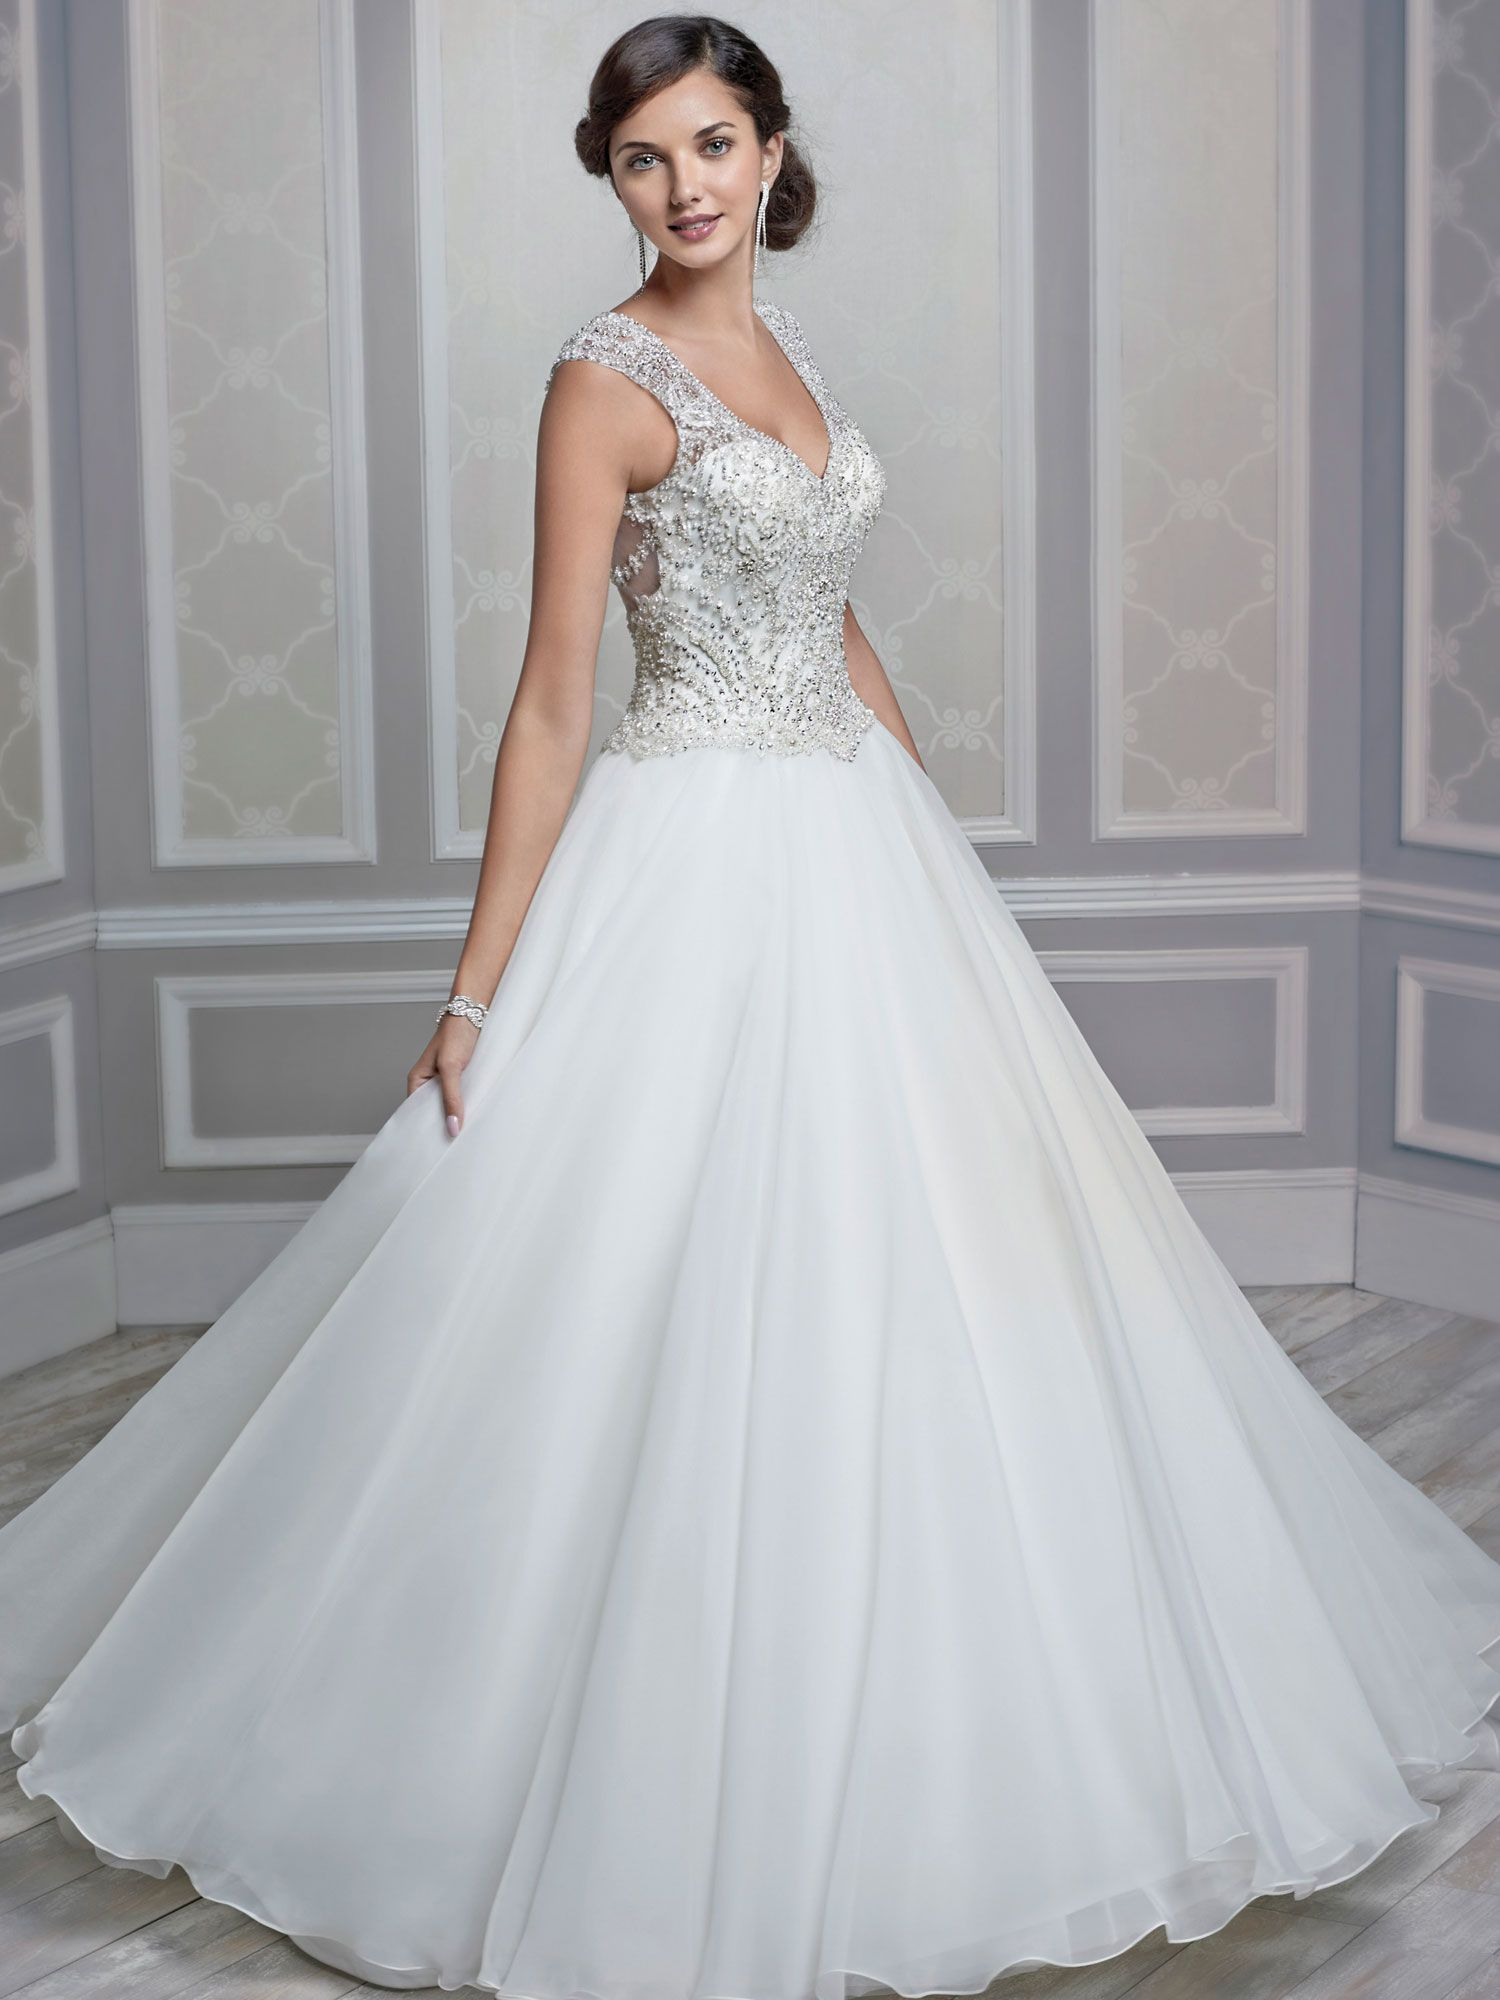 Style * 1611 * » Bridal Gowns, Wedding Dresses »